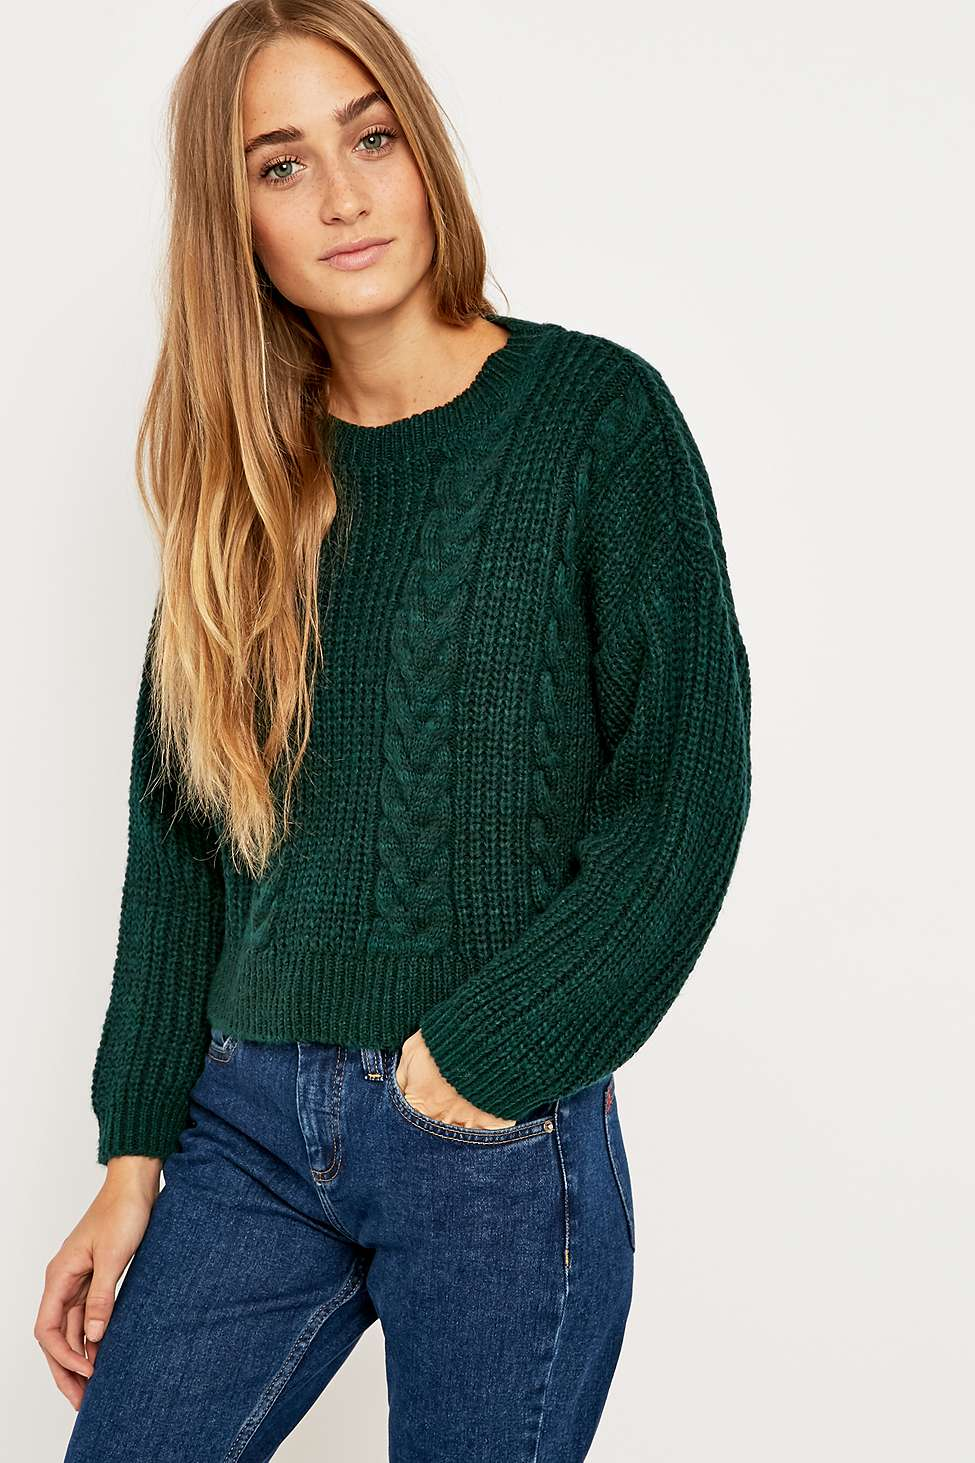 Urban Outfitter - Pull ras-du-cou